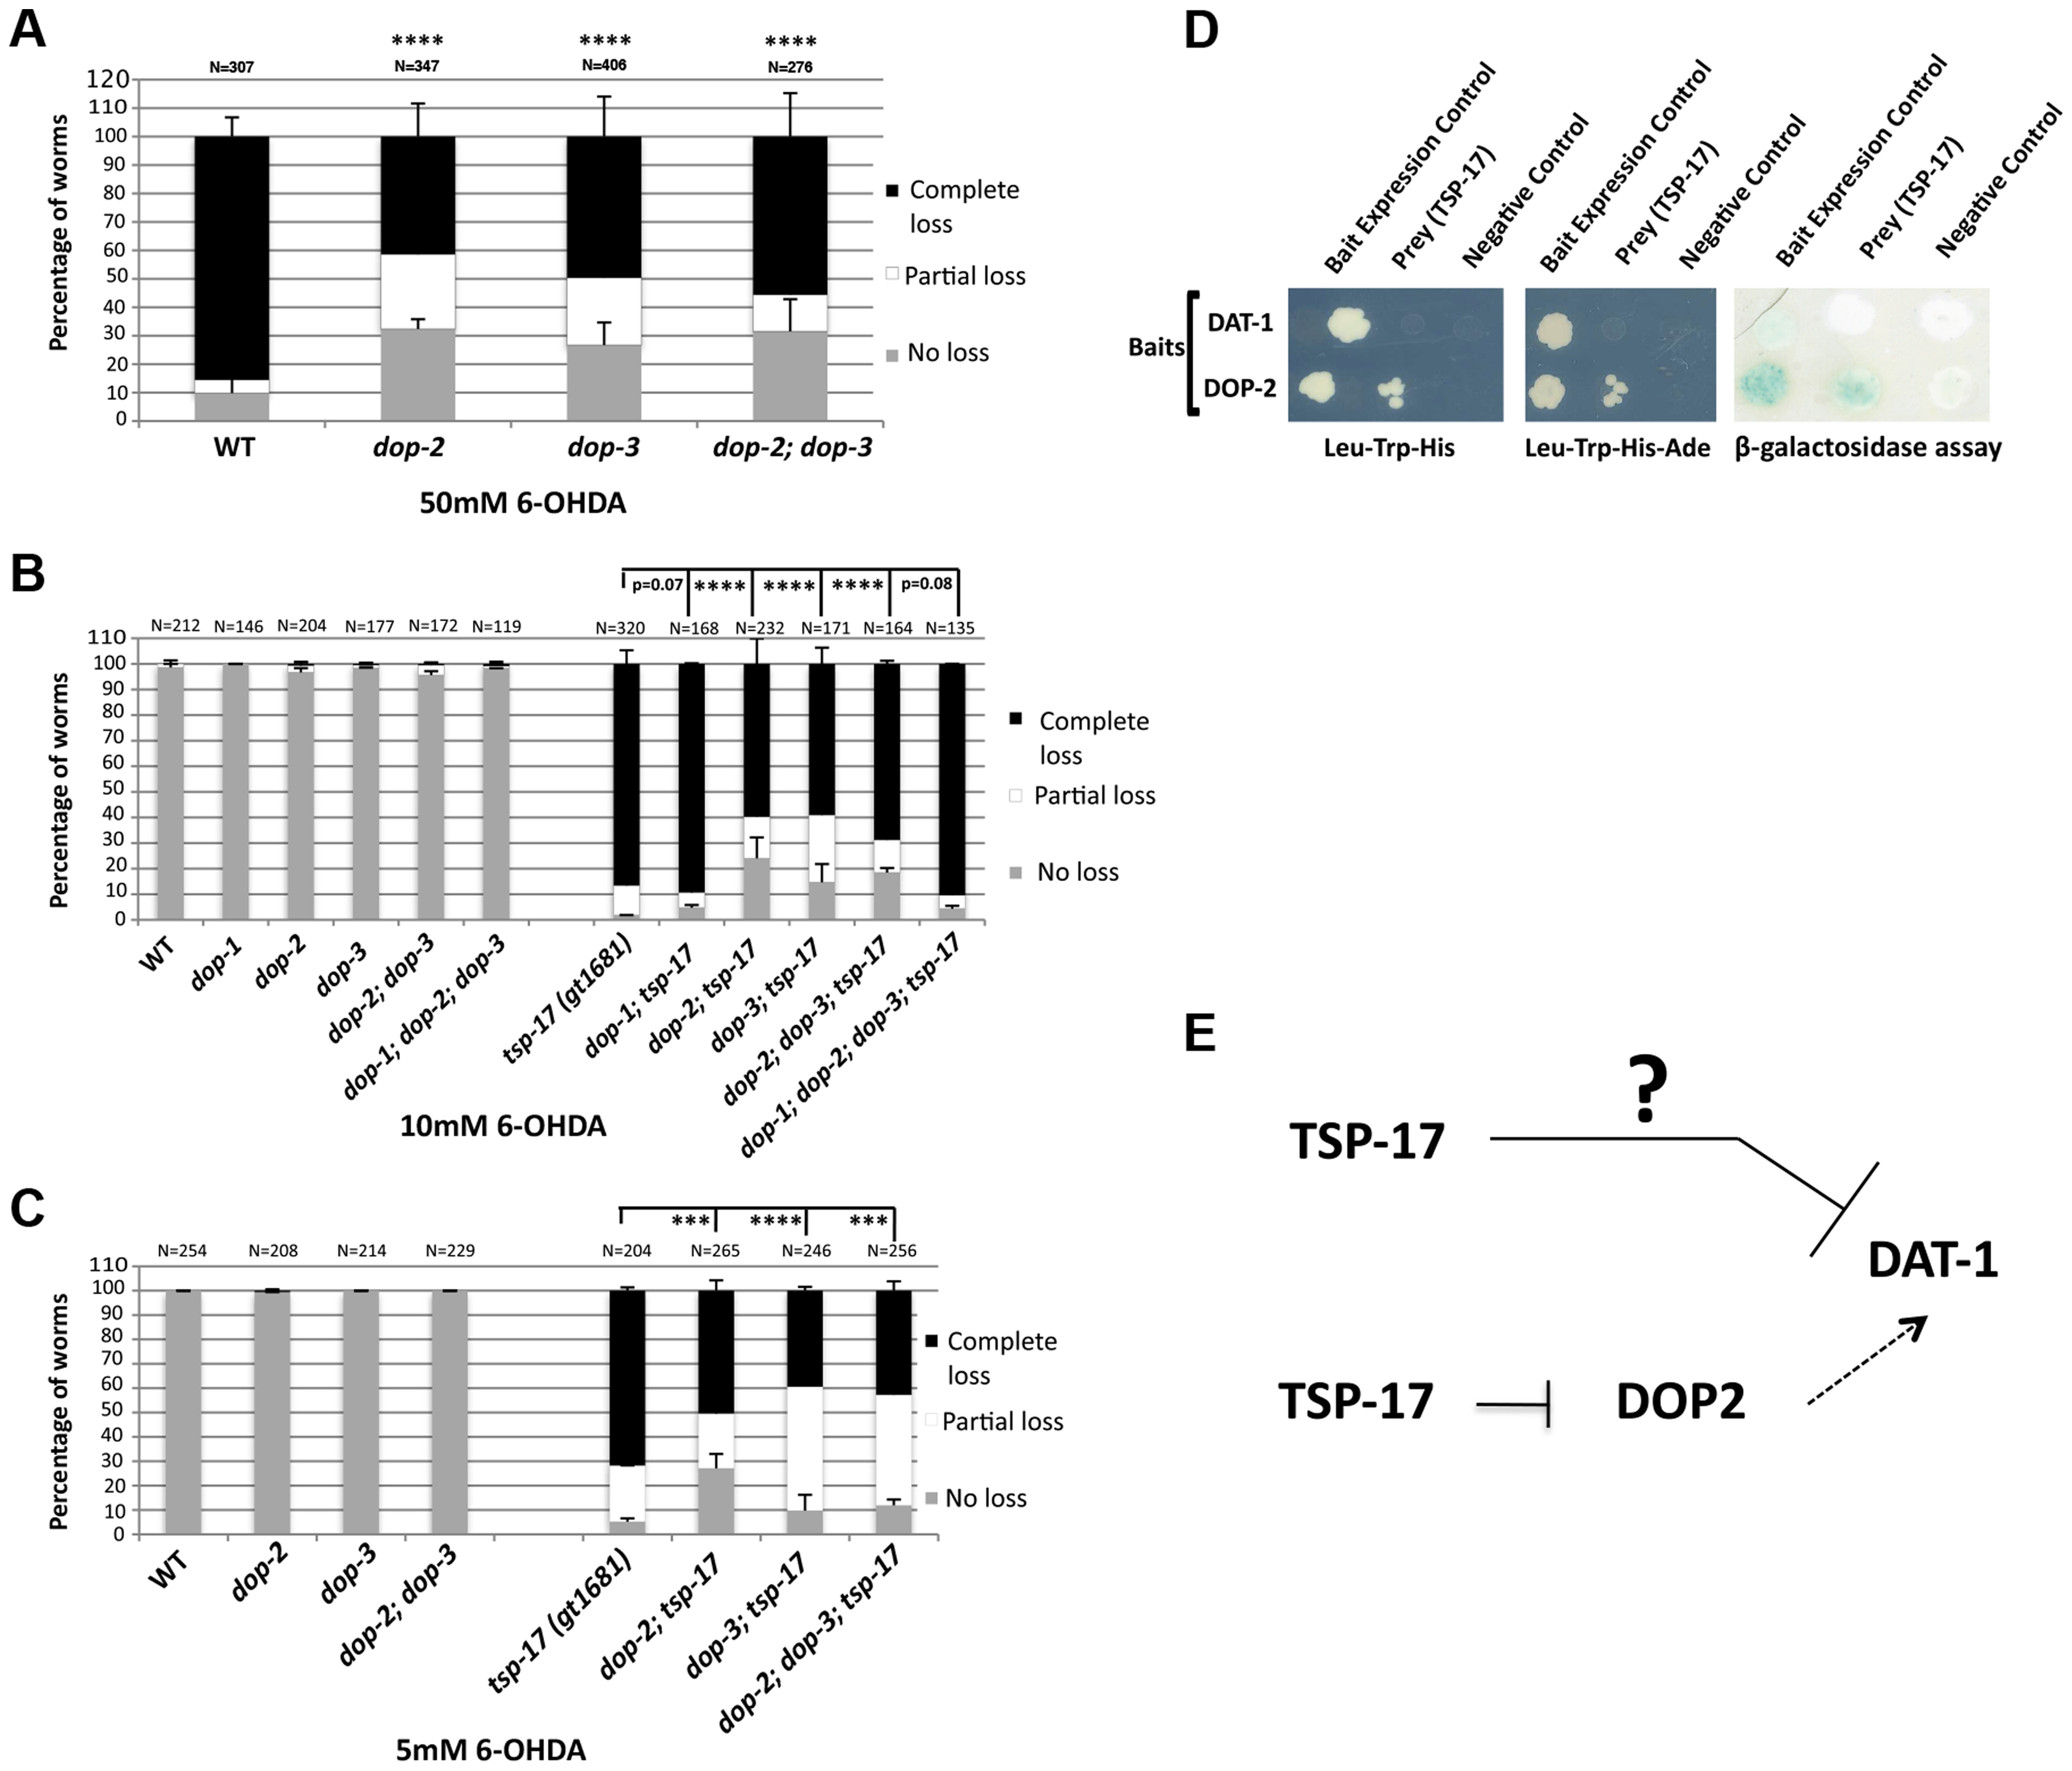 Dopamine receptors act antagonistically to modulate the sensitivity of <i>tsp-17 (gt1681)</i> mutants to 6-OHDA.